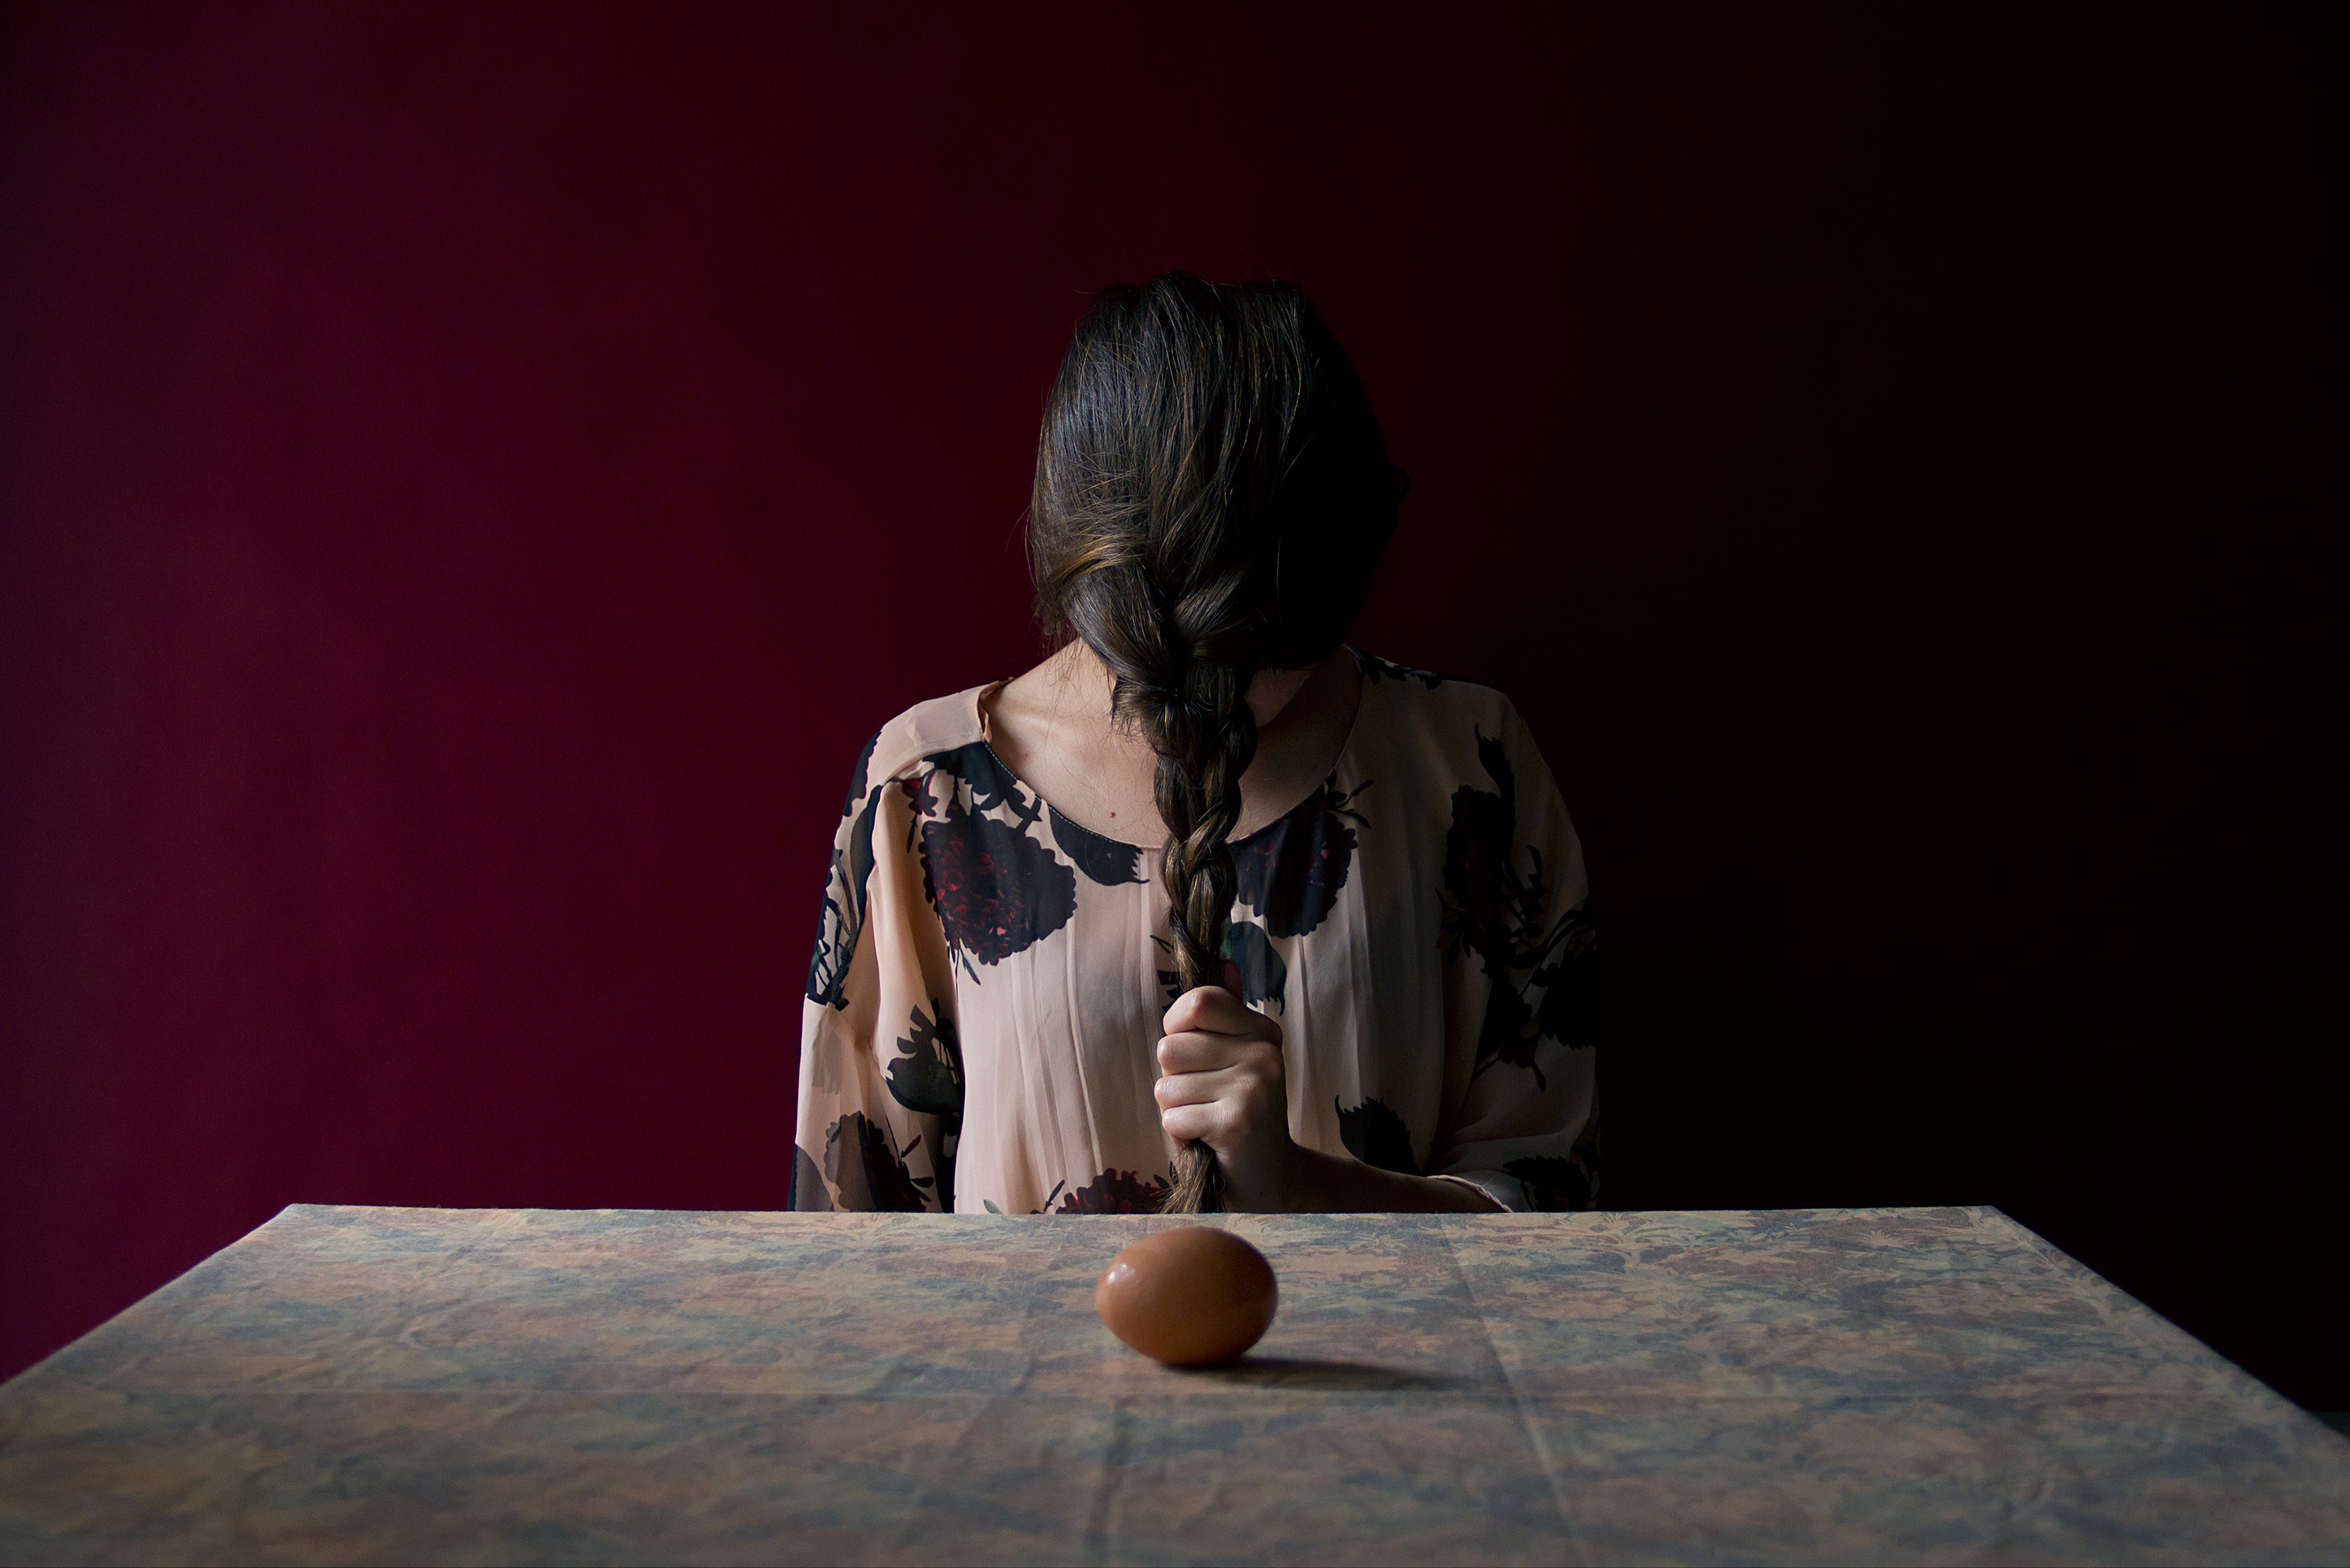 the exhibition The Silence of the Pomegranates by Andrea Torres Balaguer